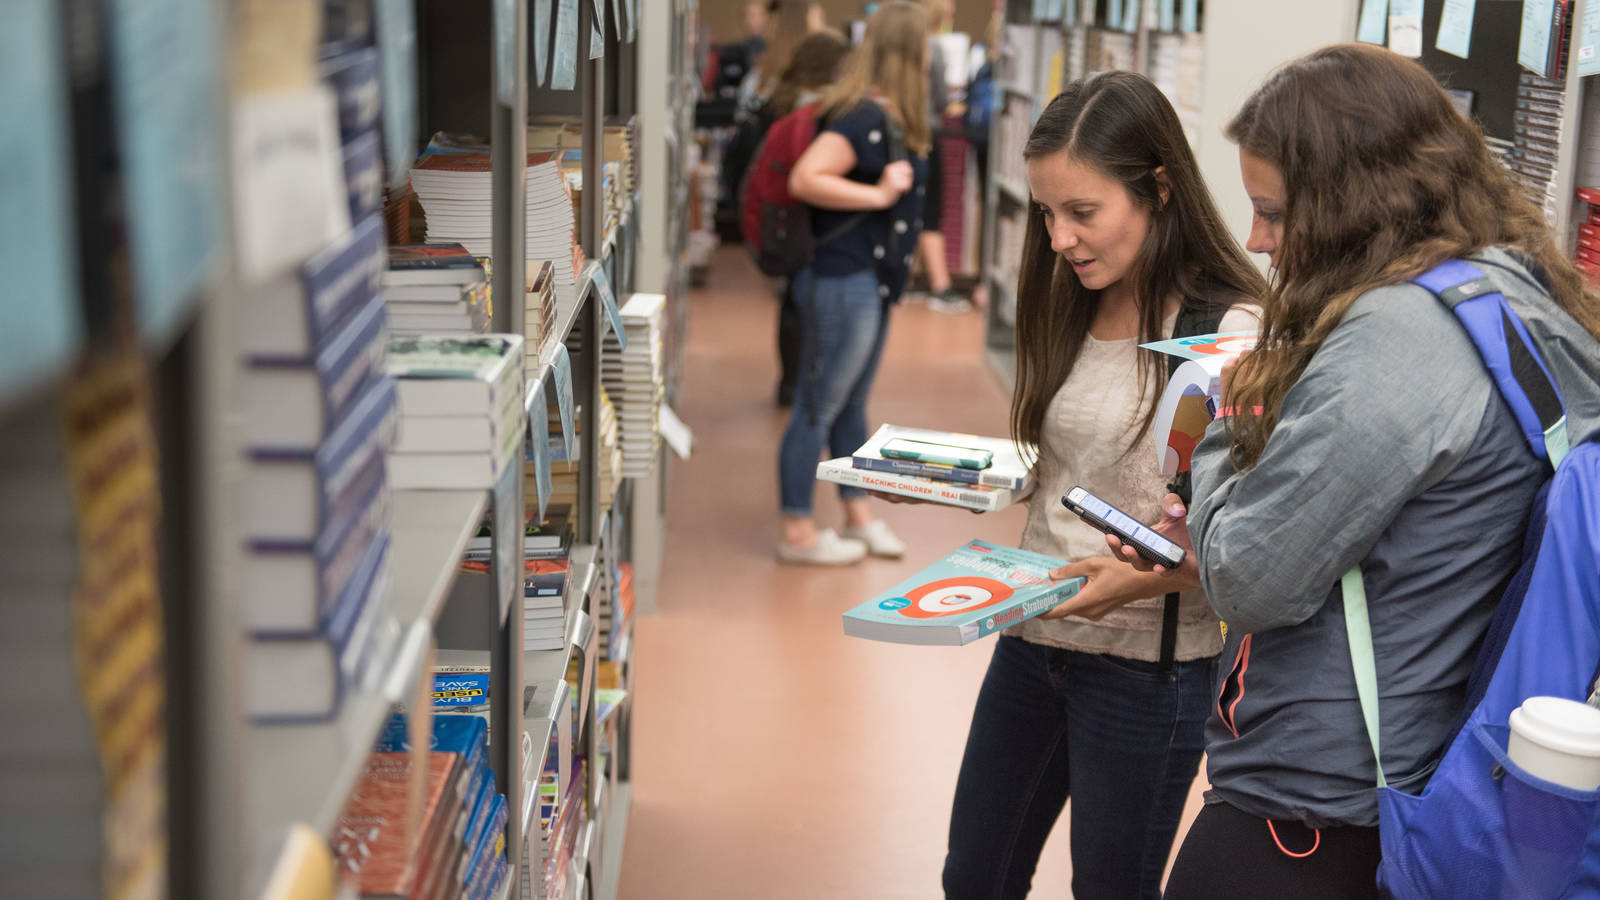 Book rental shoppers